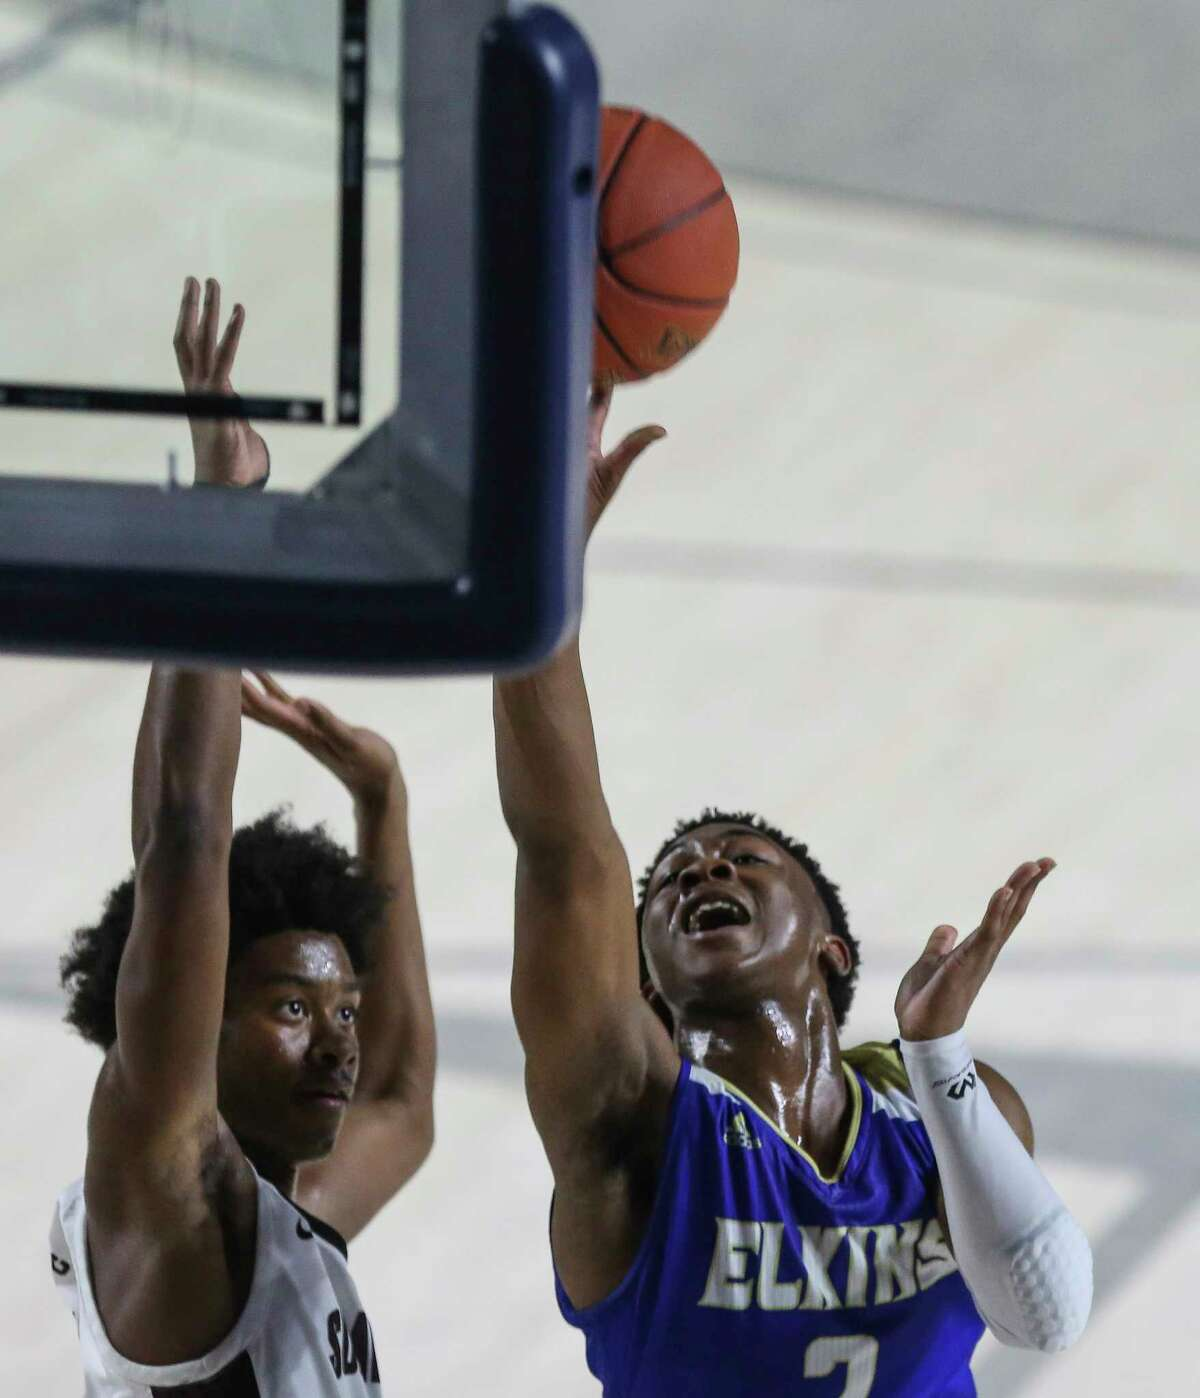 Elkins guard Jacolbi Harris (2) goes for a lay up while Summer Creek point guard Karter Dutton (11) is trying to stop him during the second quarter of a UIL 6A Region III Boys Basketball Playoffs Semifinal game Tuesday, March 2, 2021, at Delmar Fieldhouse in Houston.